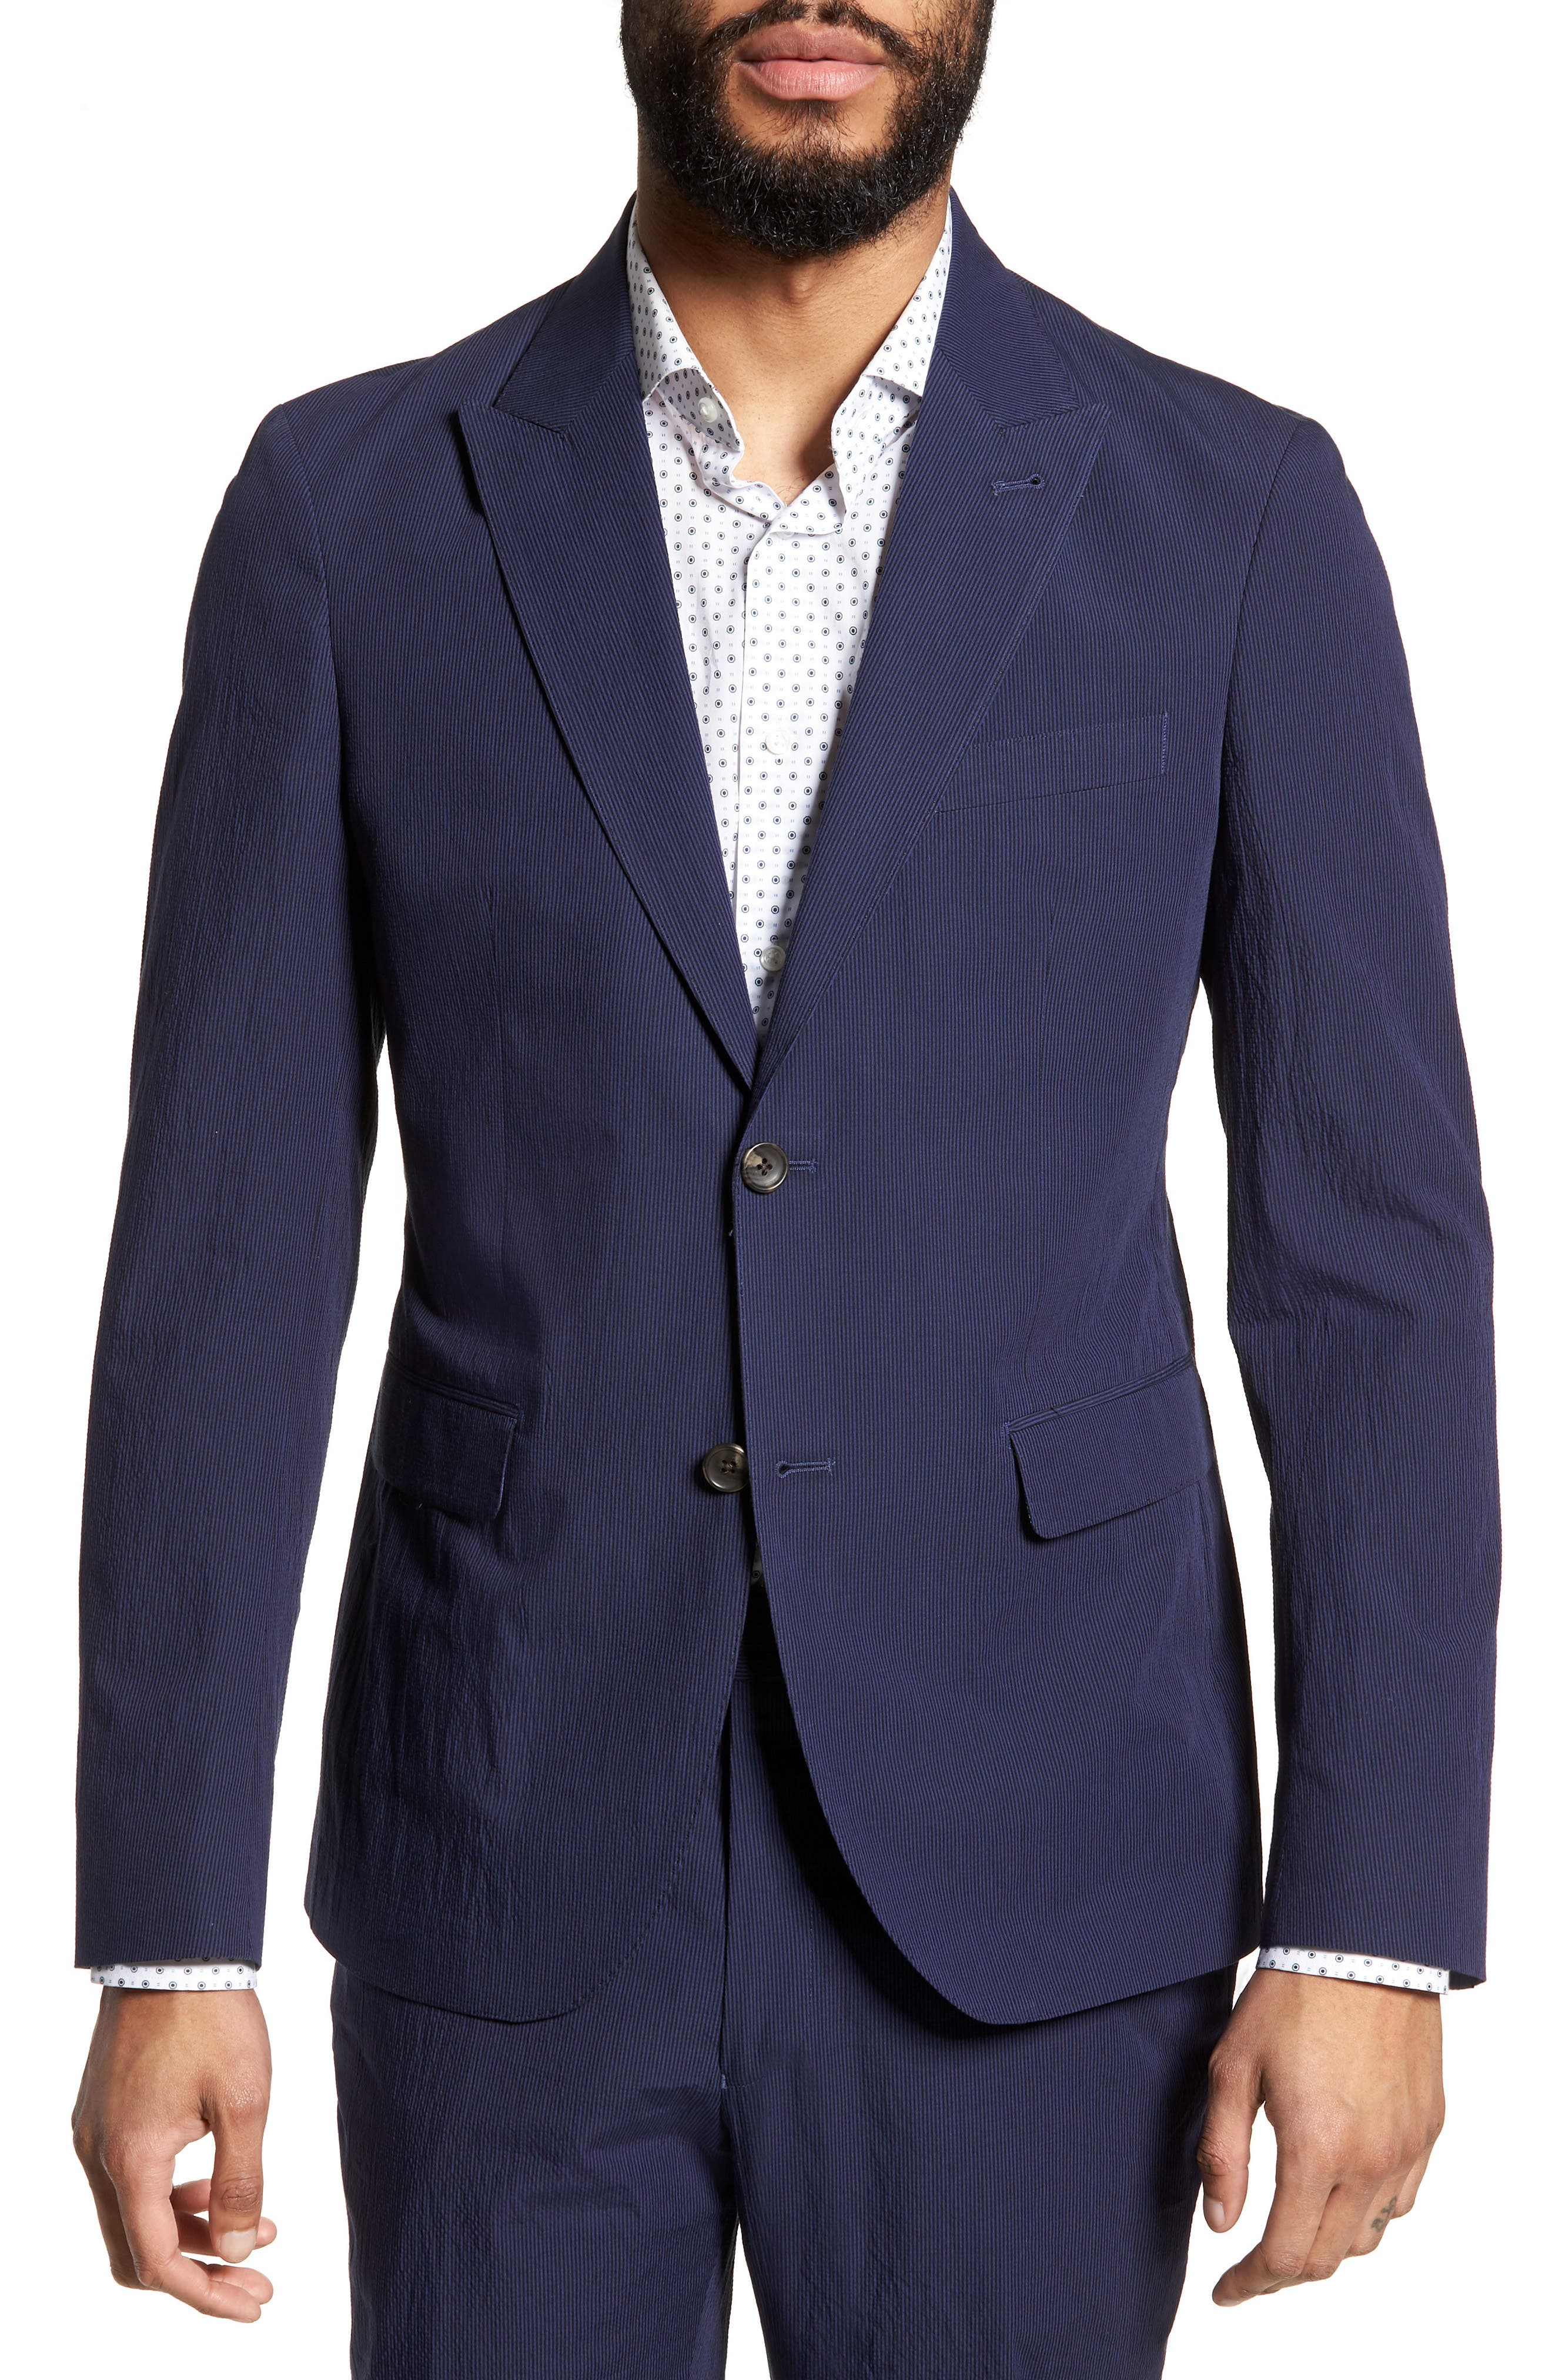 Volante Seersucker Suit Jacket,                             Main thumbnail 1, color,                             400